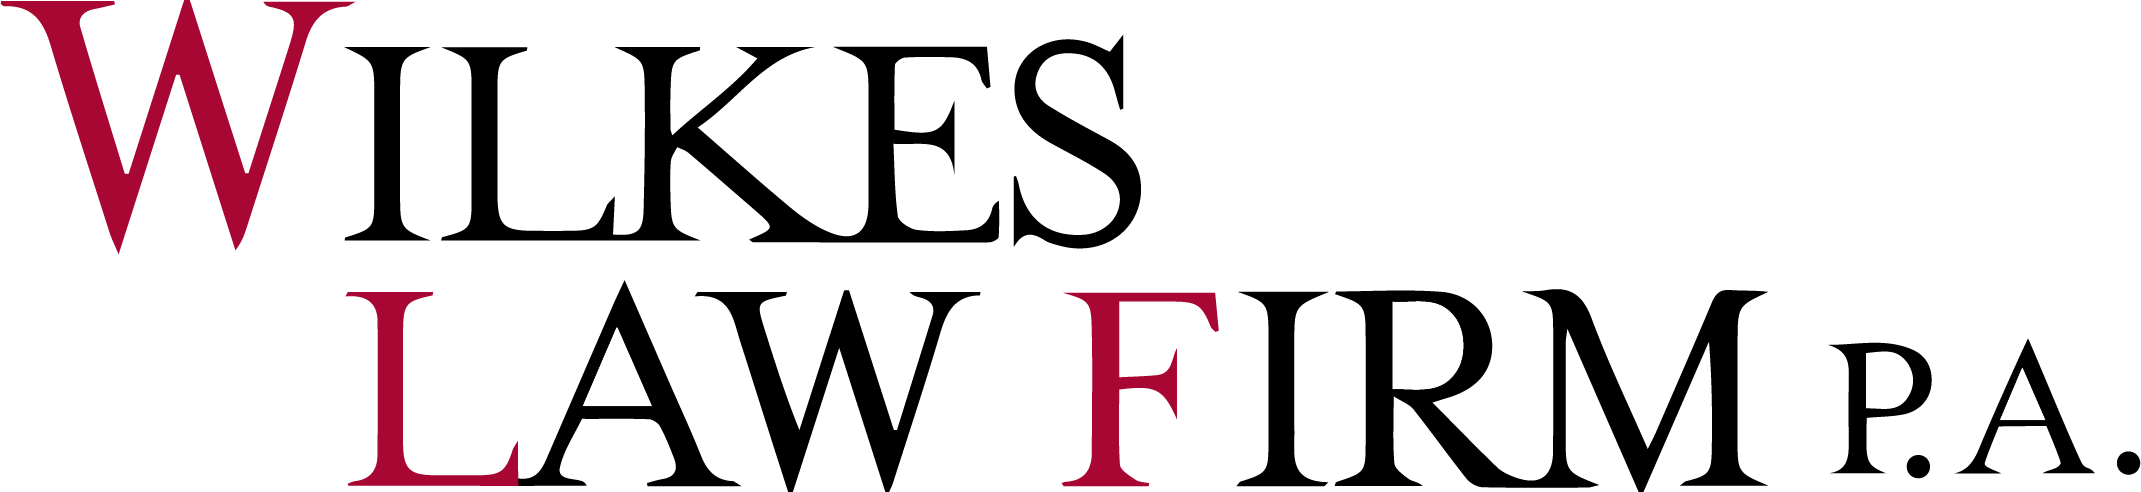 Wilkes Law Firm Logo